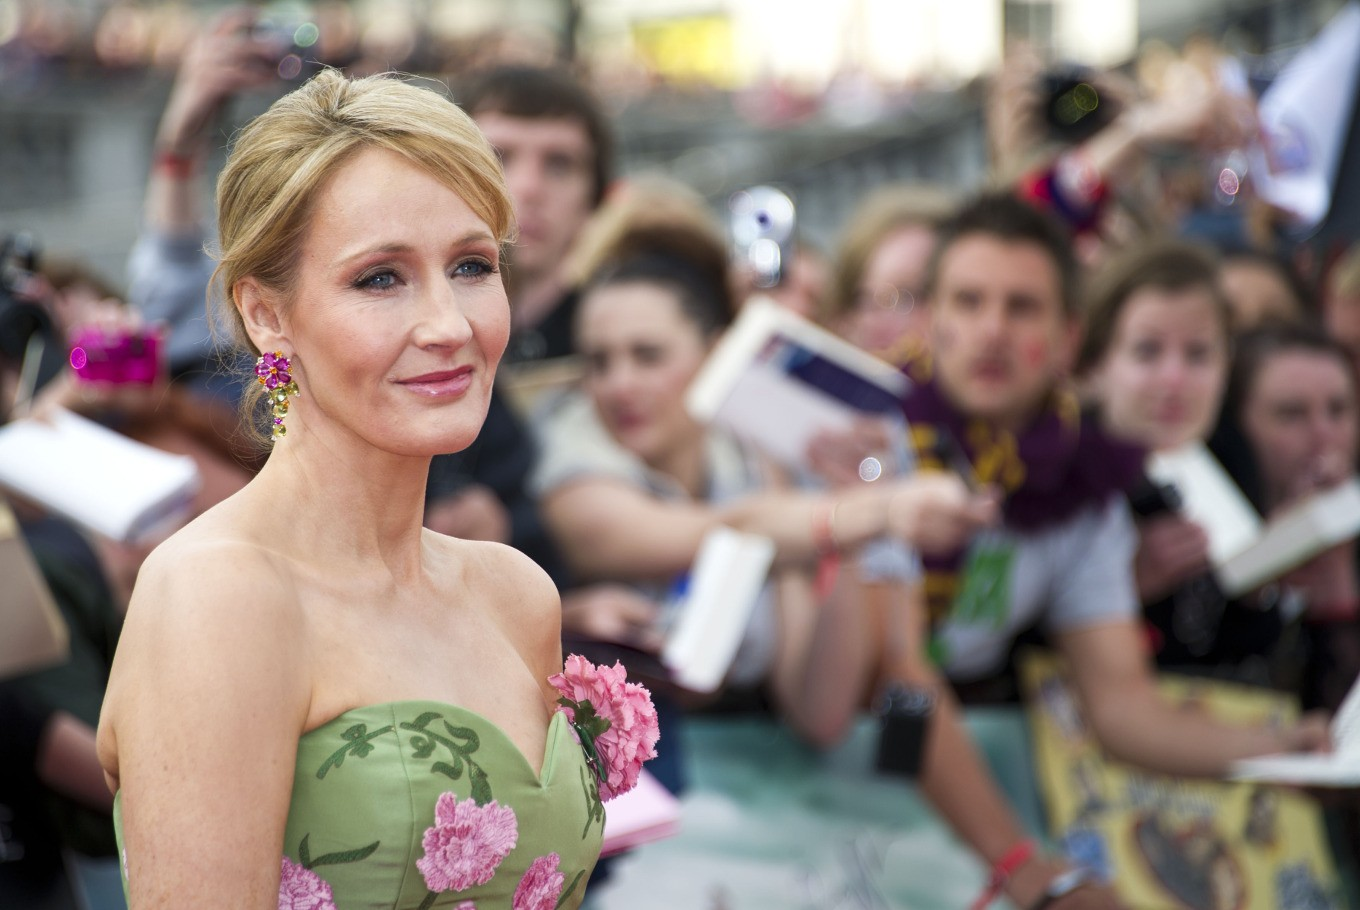 J.K. Rowling reveals 'lost' manuscript written on her party dress